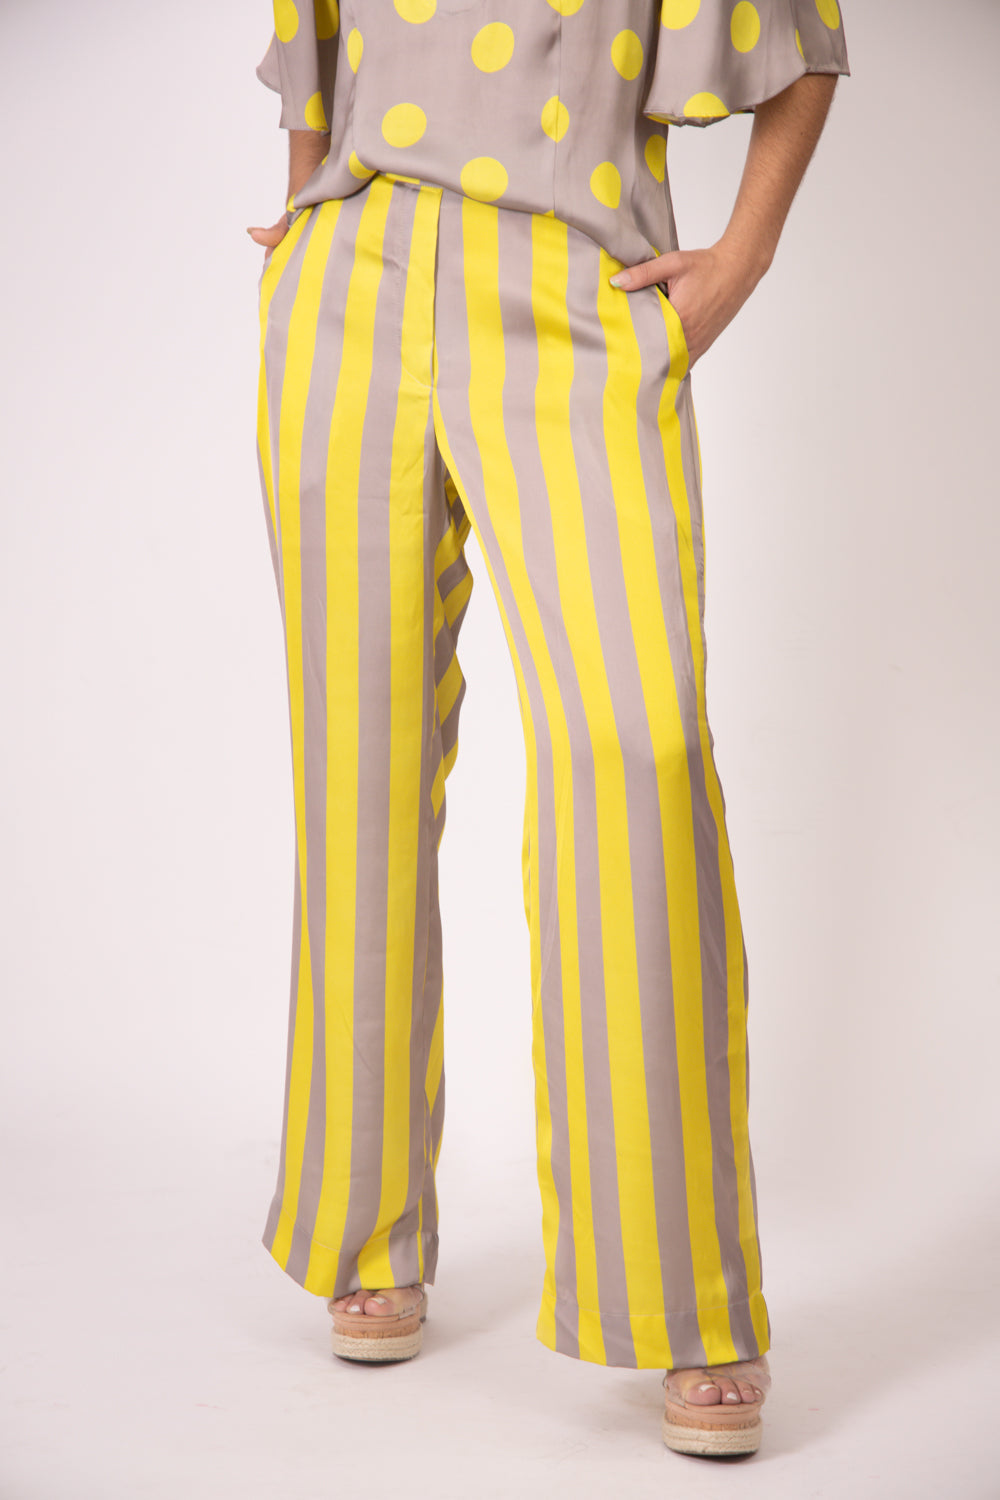 Silk Pants -  Vertical Gray and Yellow Stripes